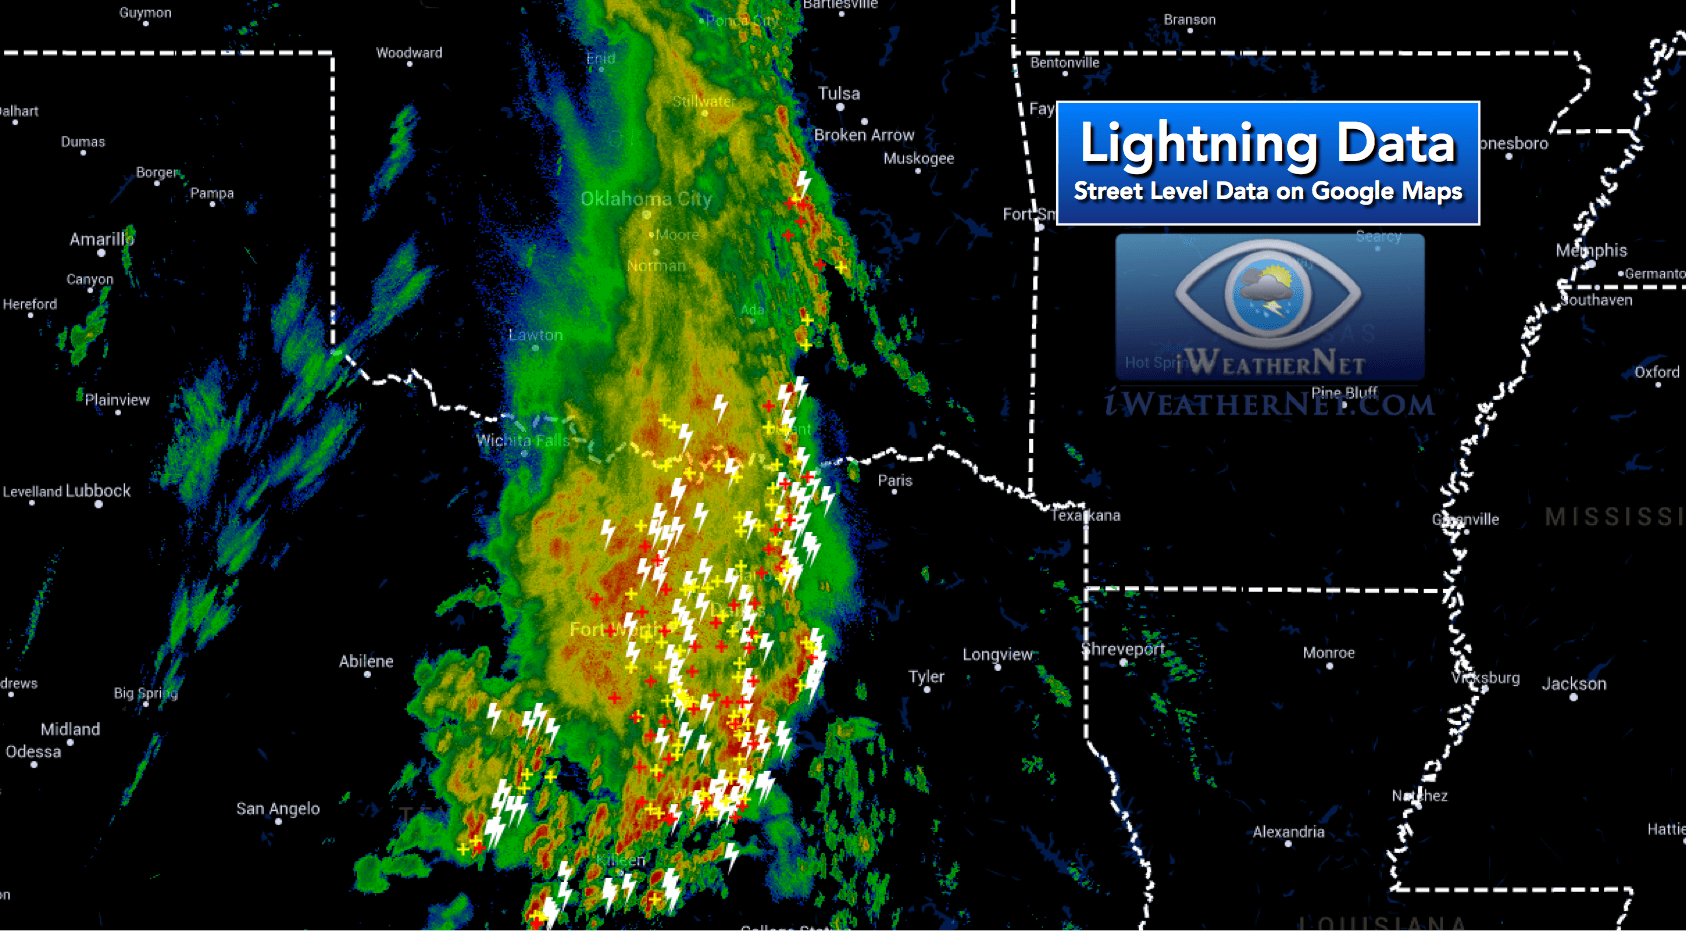 Latest Lightning Strikes on Google Maps – iWeatherNet